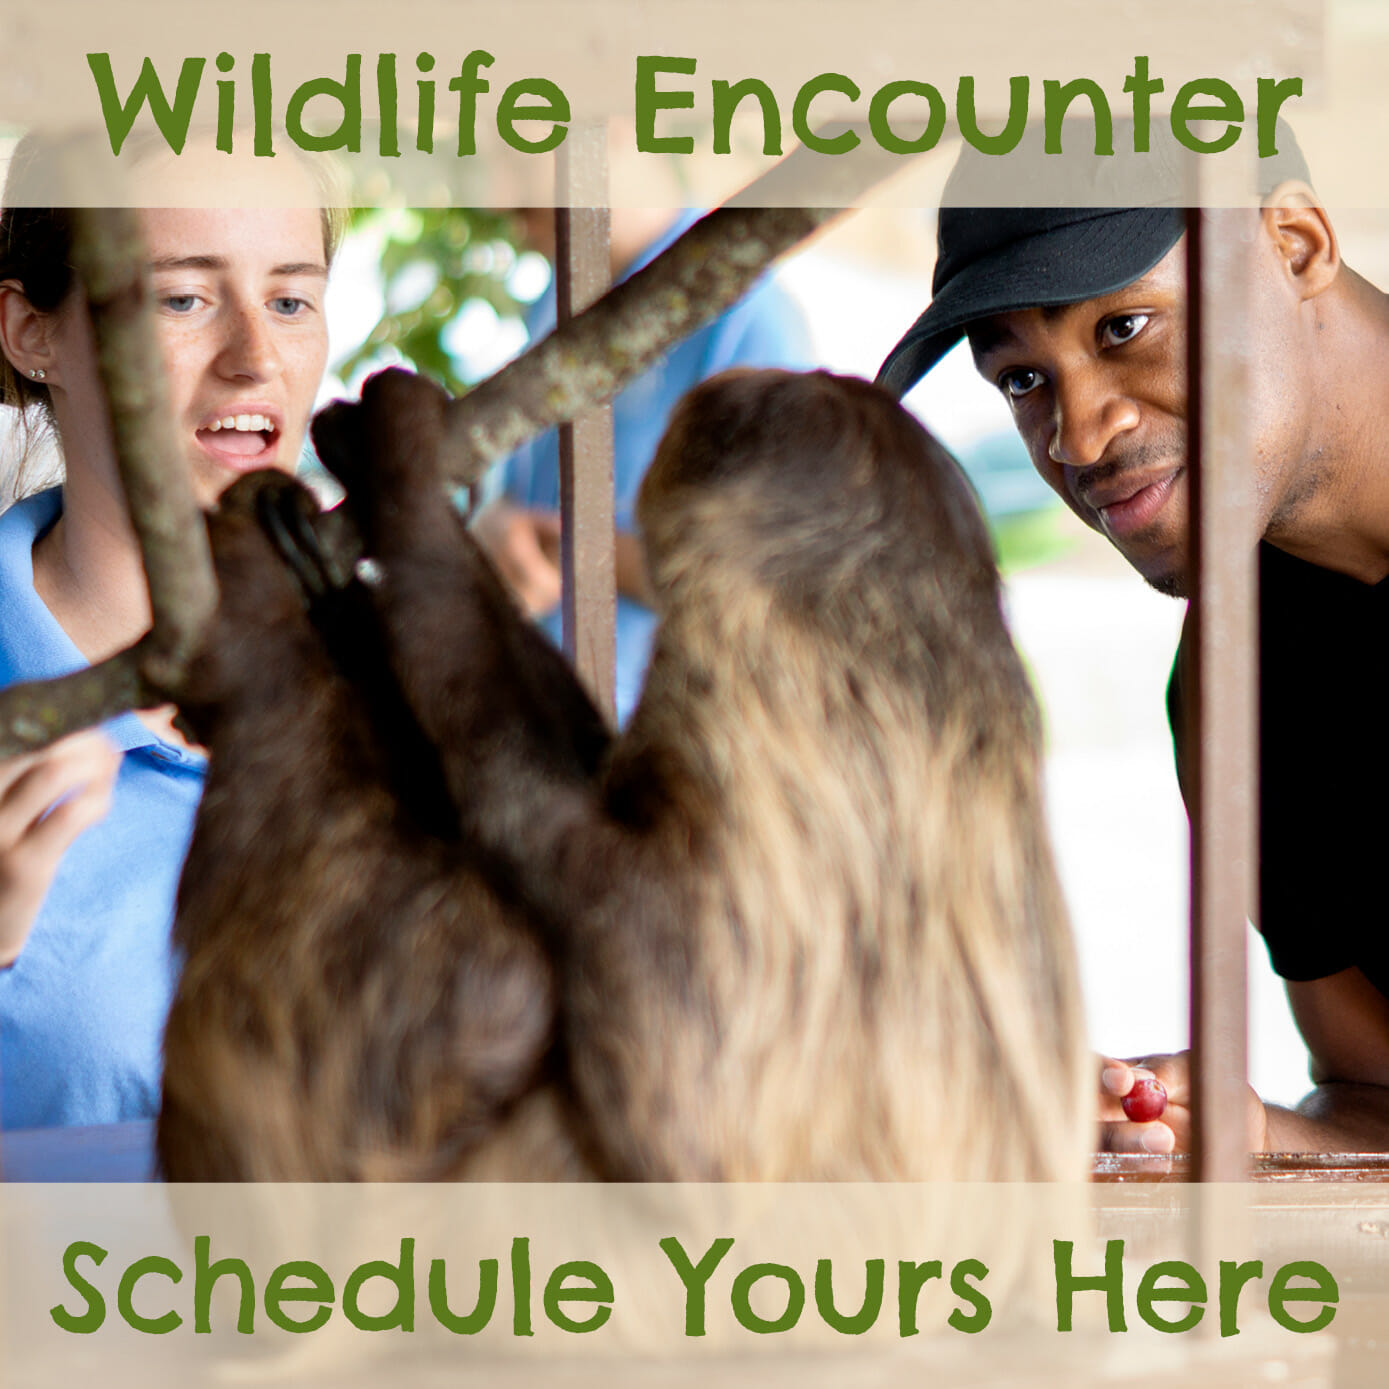 have a private wildlife encounter with your favorite ambassador animal